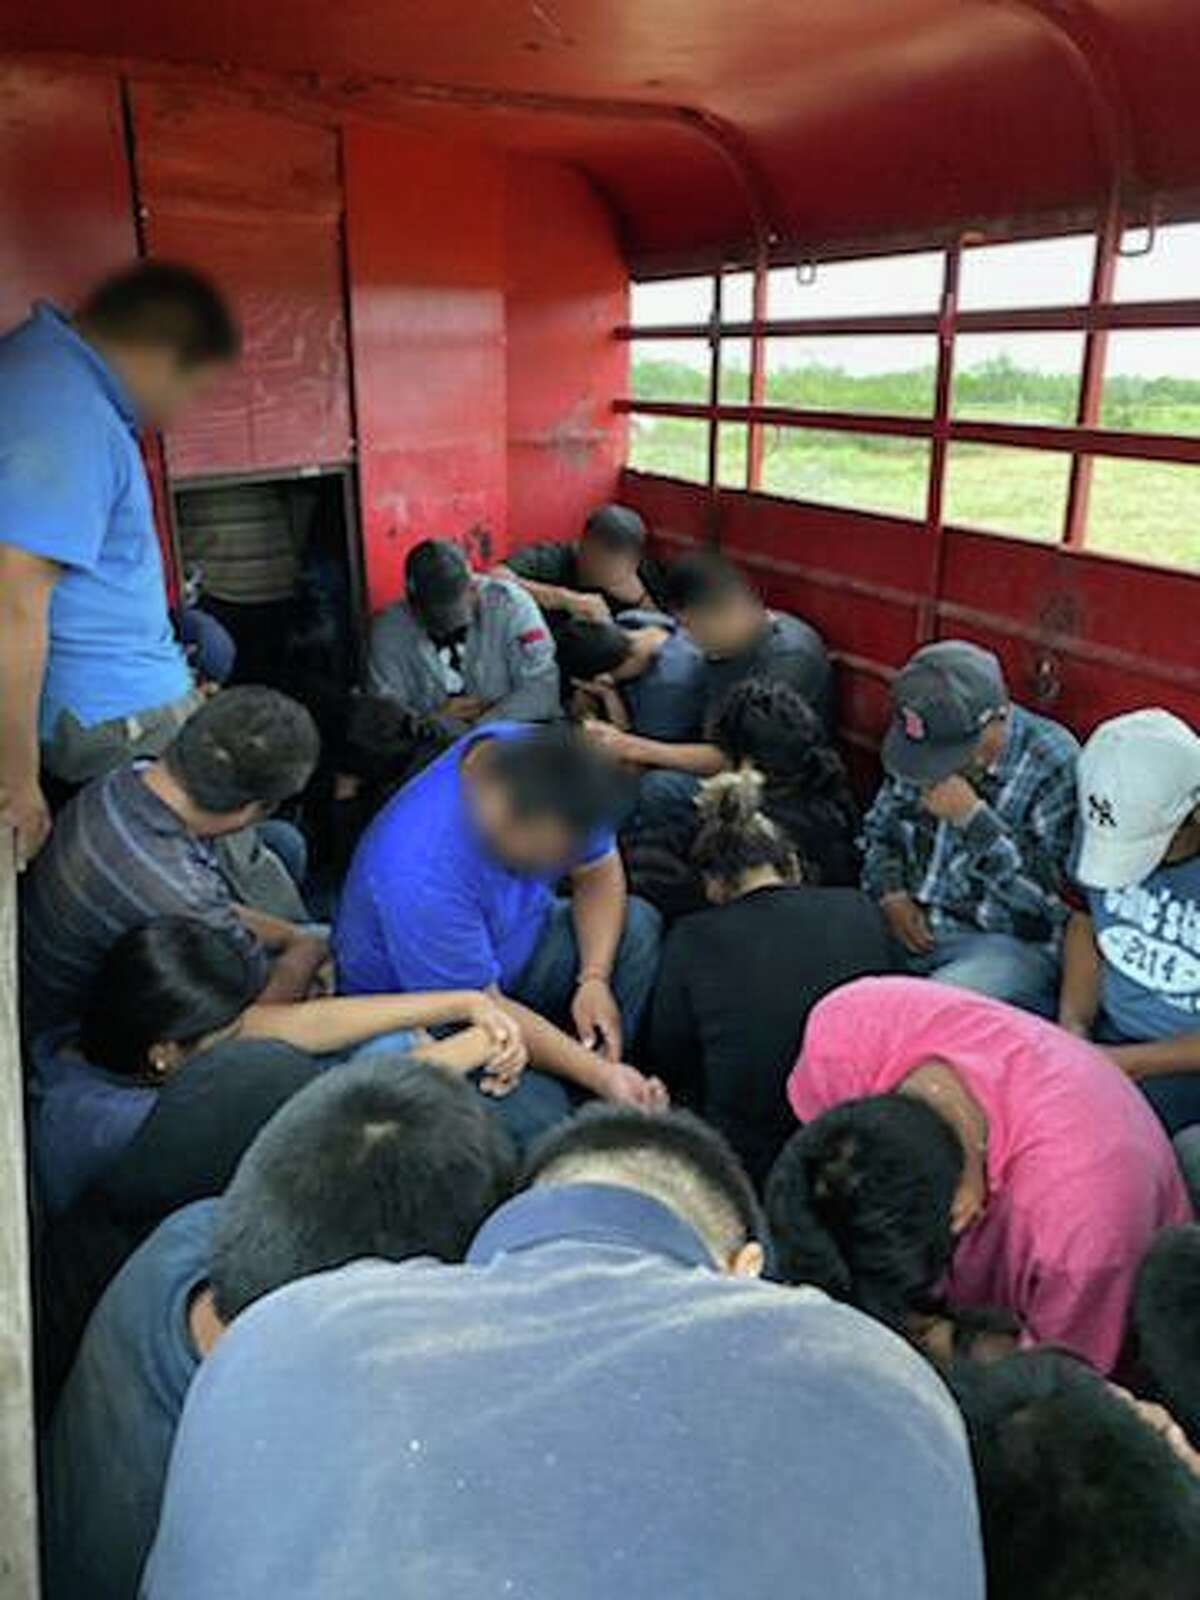 A total of 42 immigrants are from Mexico and Honduras are pictured inside a horse trailer discovered last Thursday.